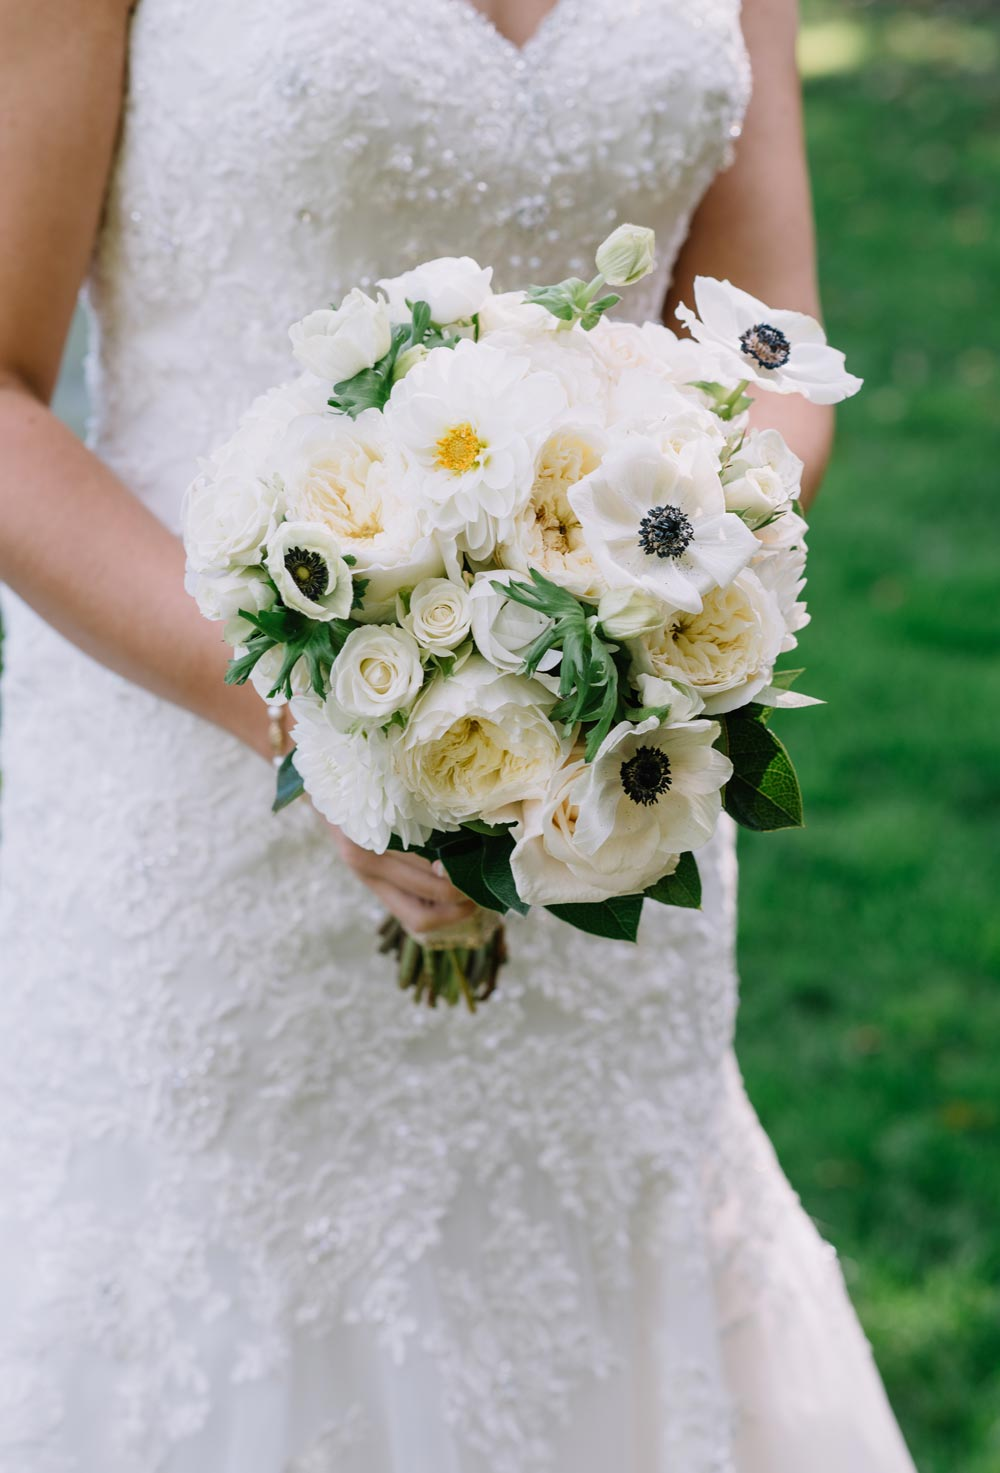 Anemone with black center in bridal bouquet : Jennifer Smith, Darling Photography